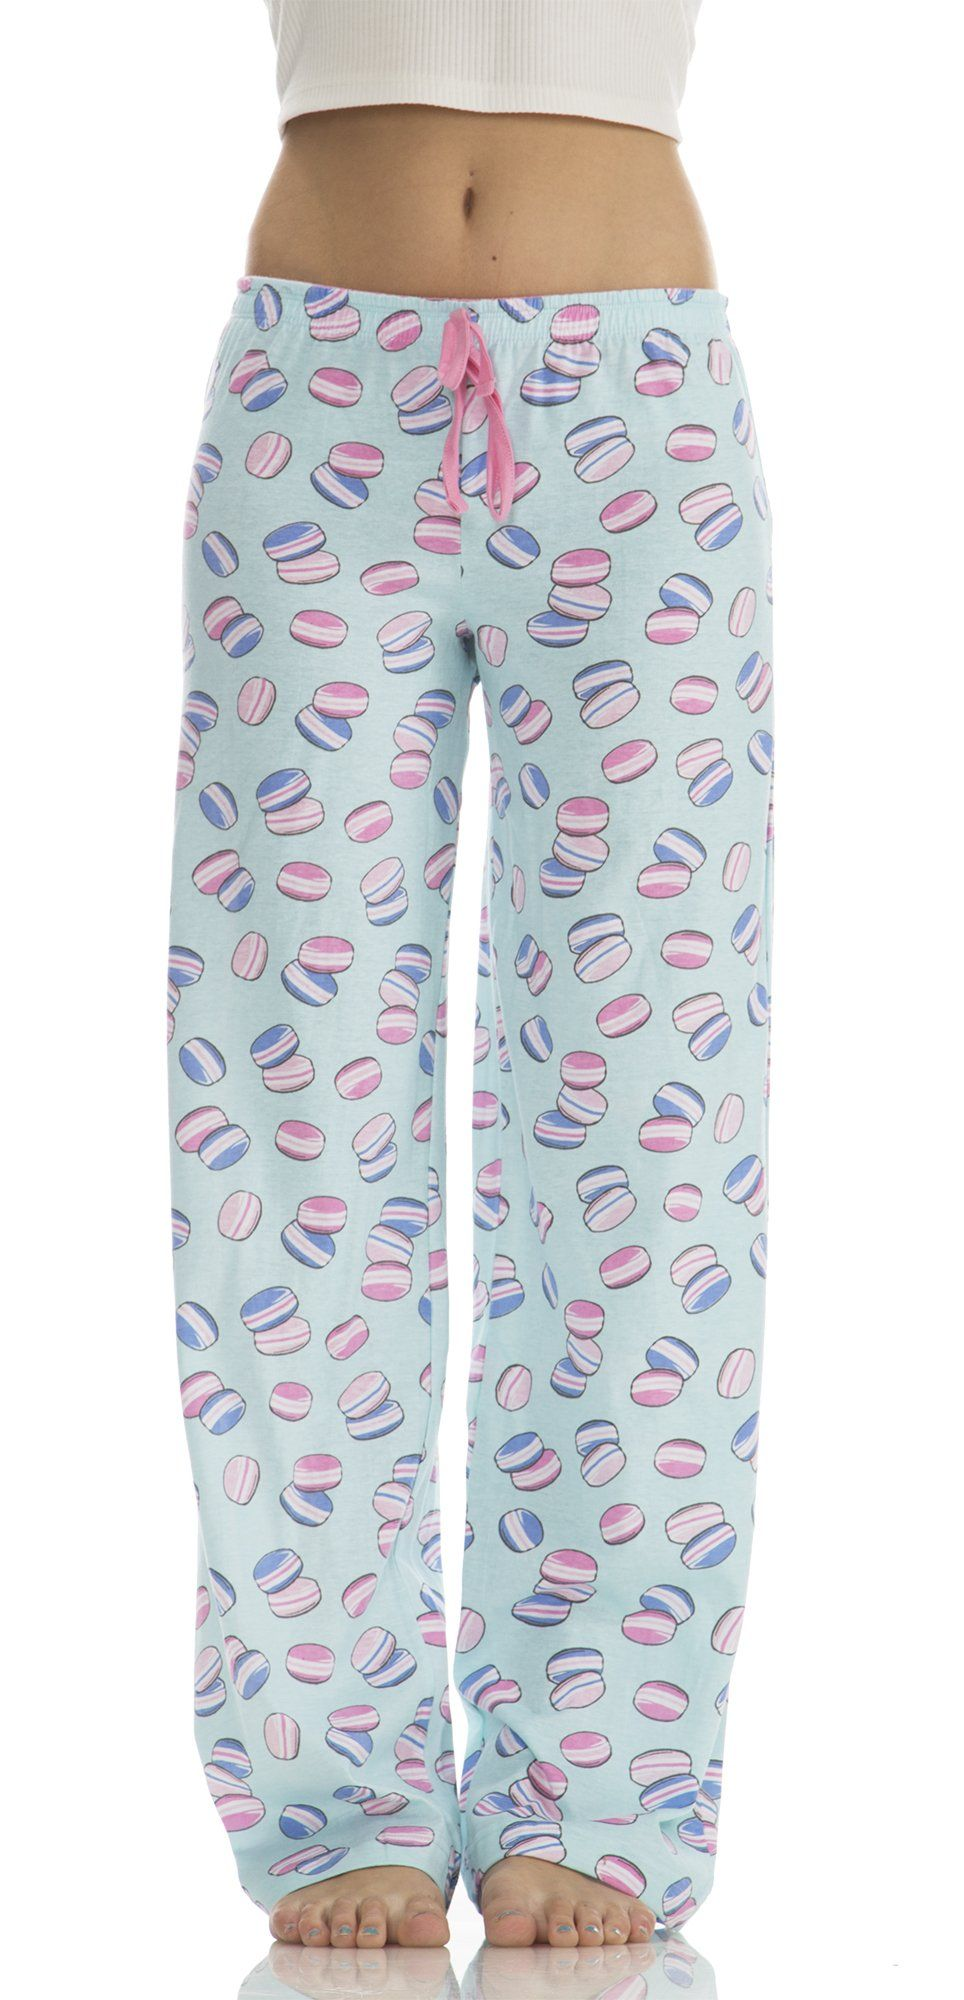 6b9d675b045c Dollhouse Women s Cotton Cute Print Pajama Bottoms In Cookie Blue ...